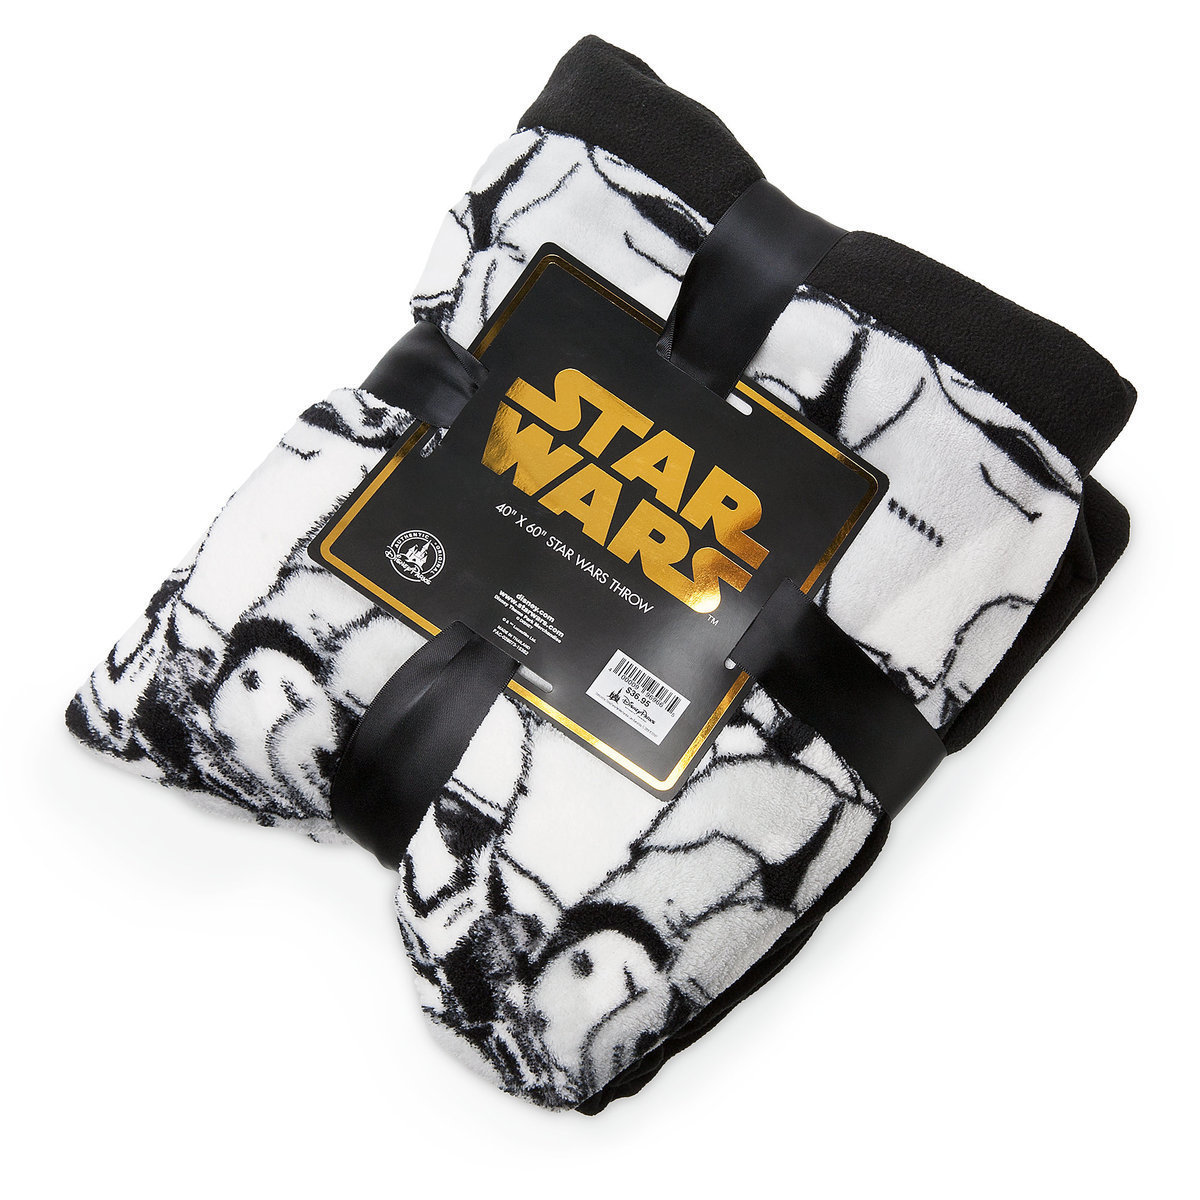 Stormtrooper Plush Throw - Star Wars